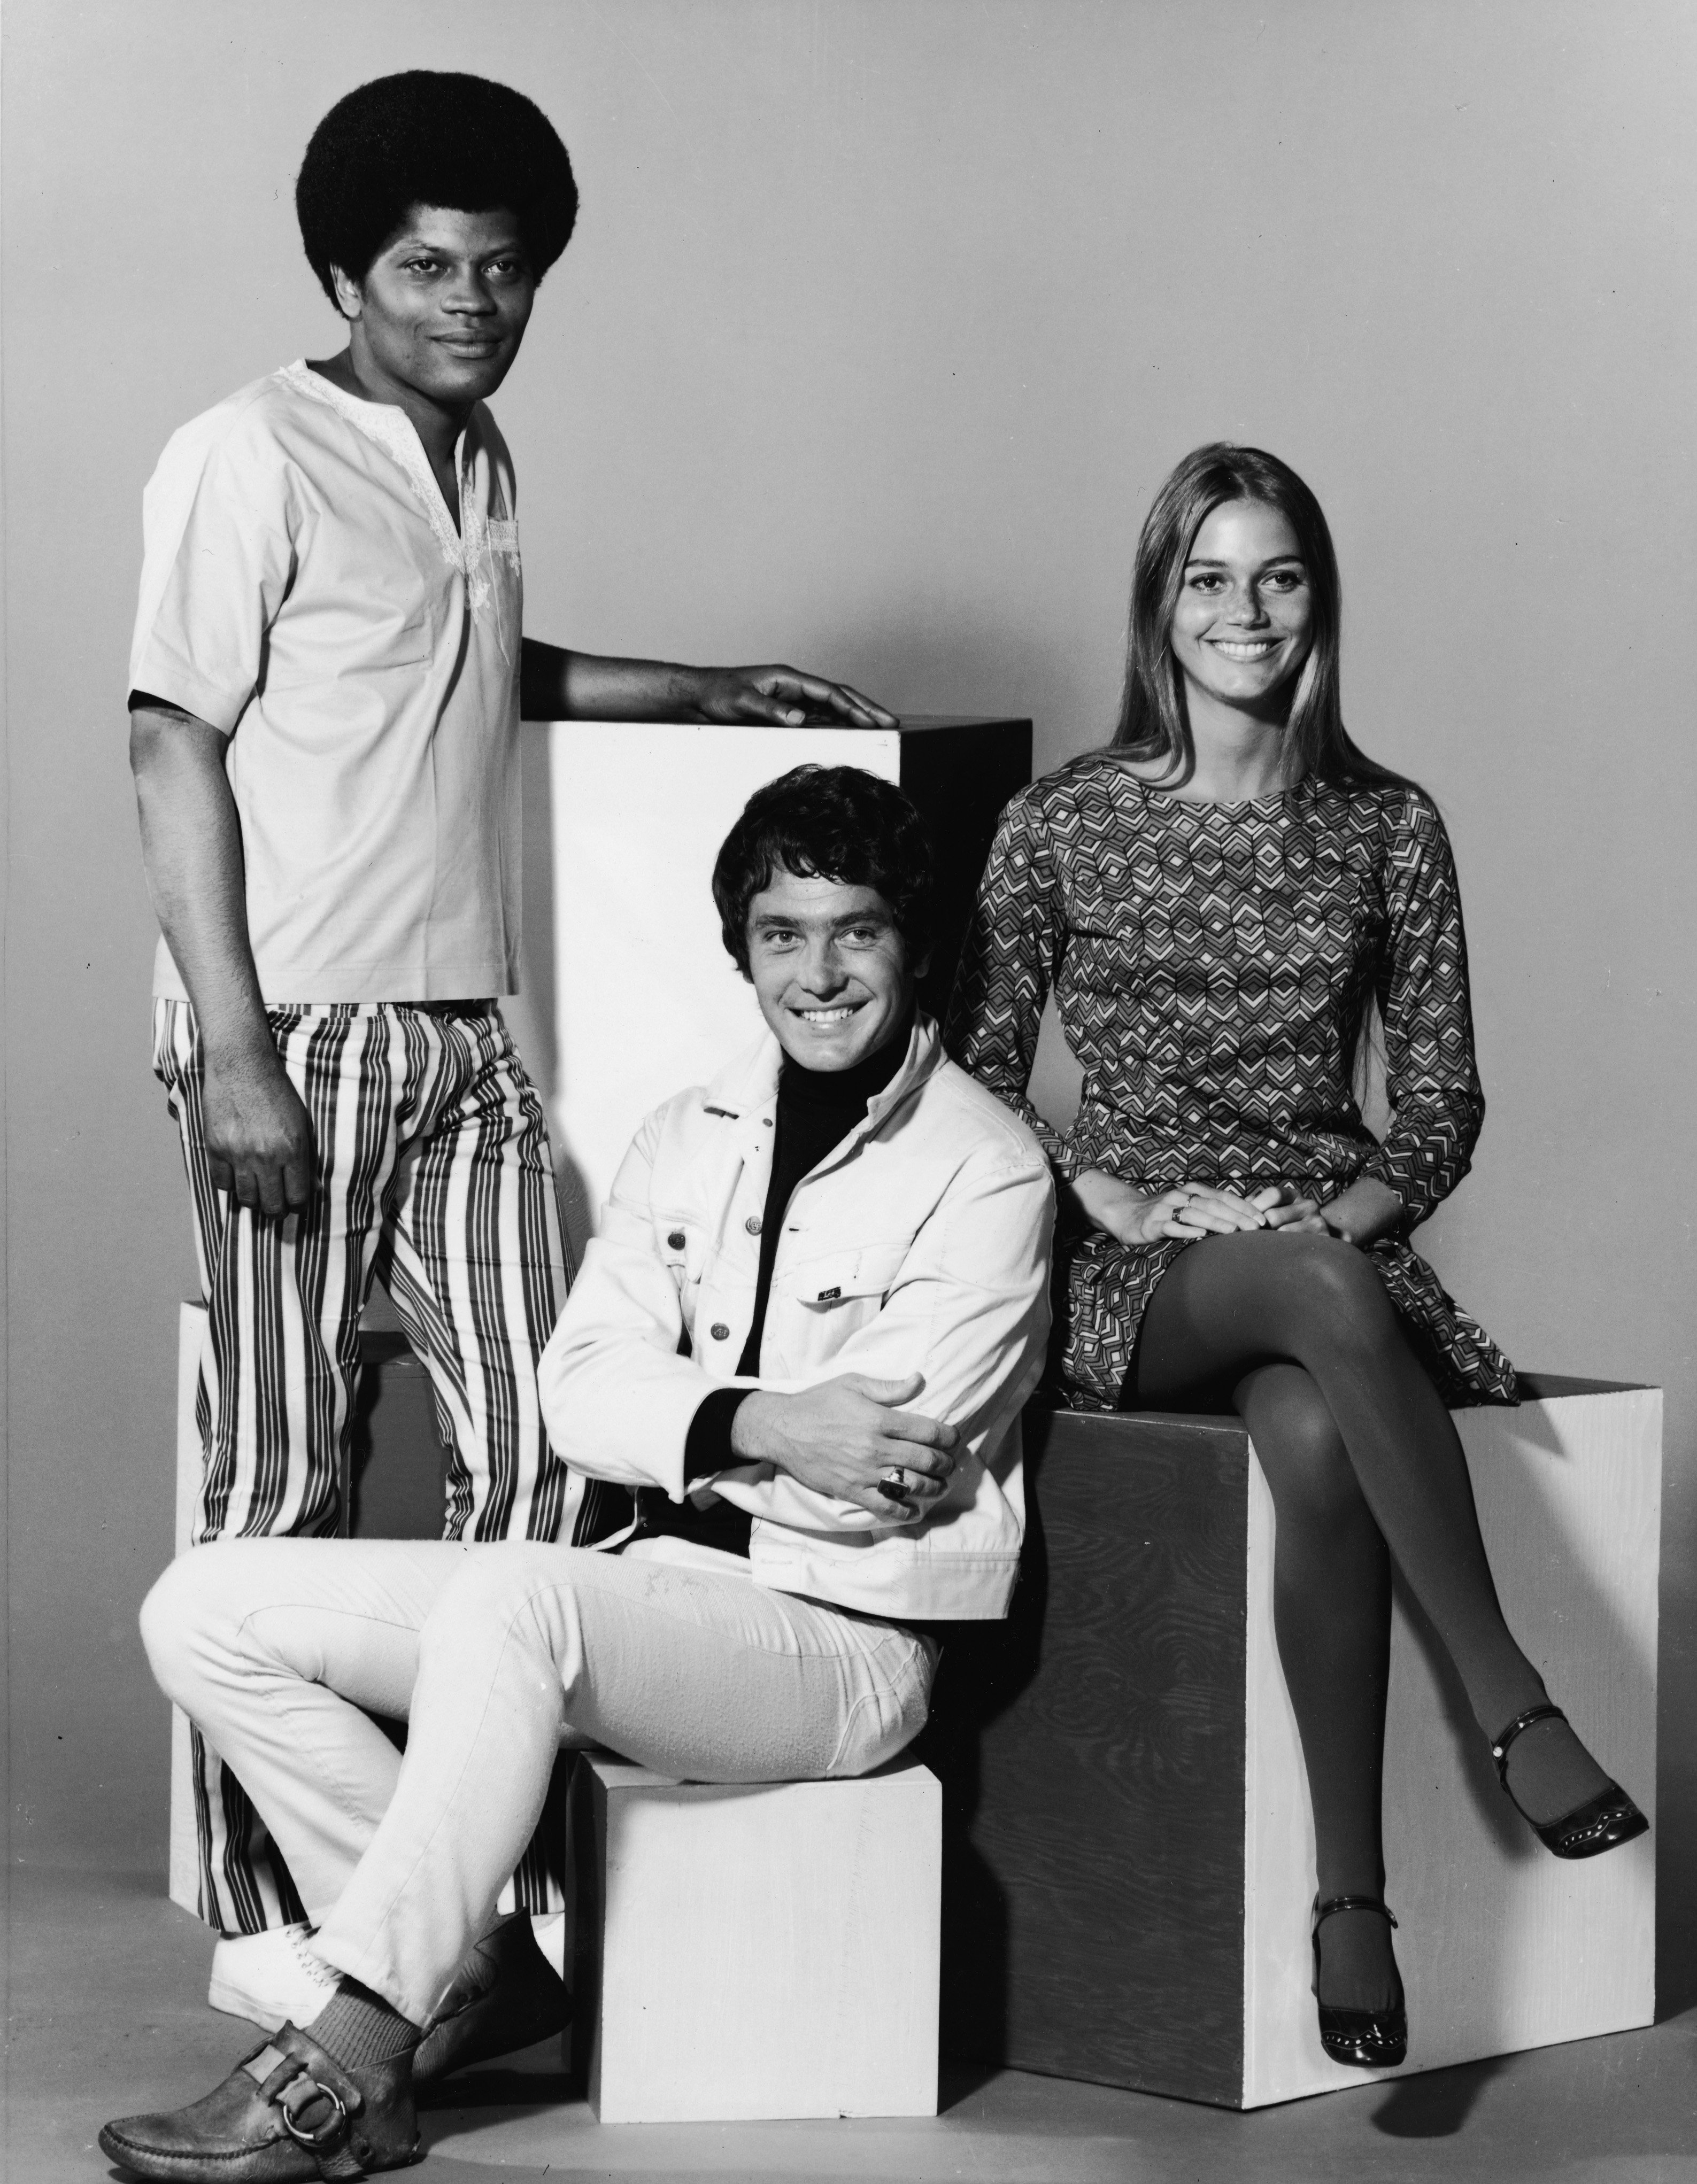 """Peggy Lipton posing with Clarence Williams III and Michael Cole for the show """"The Mod Squad"""" in 1968. 